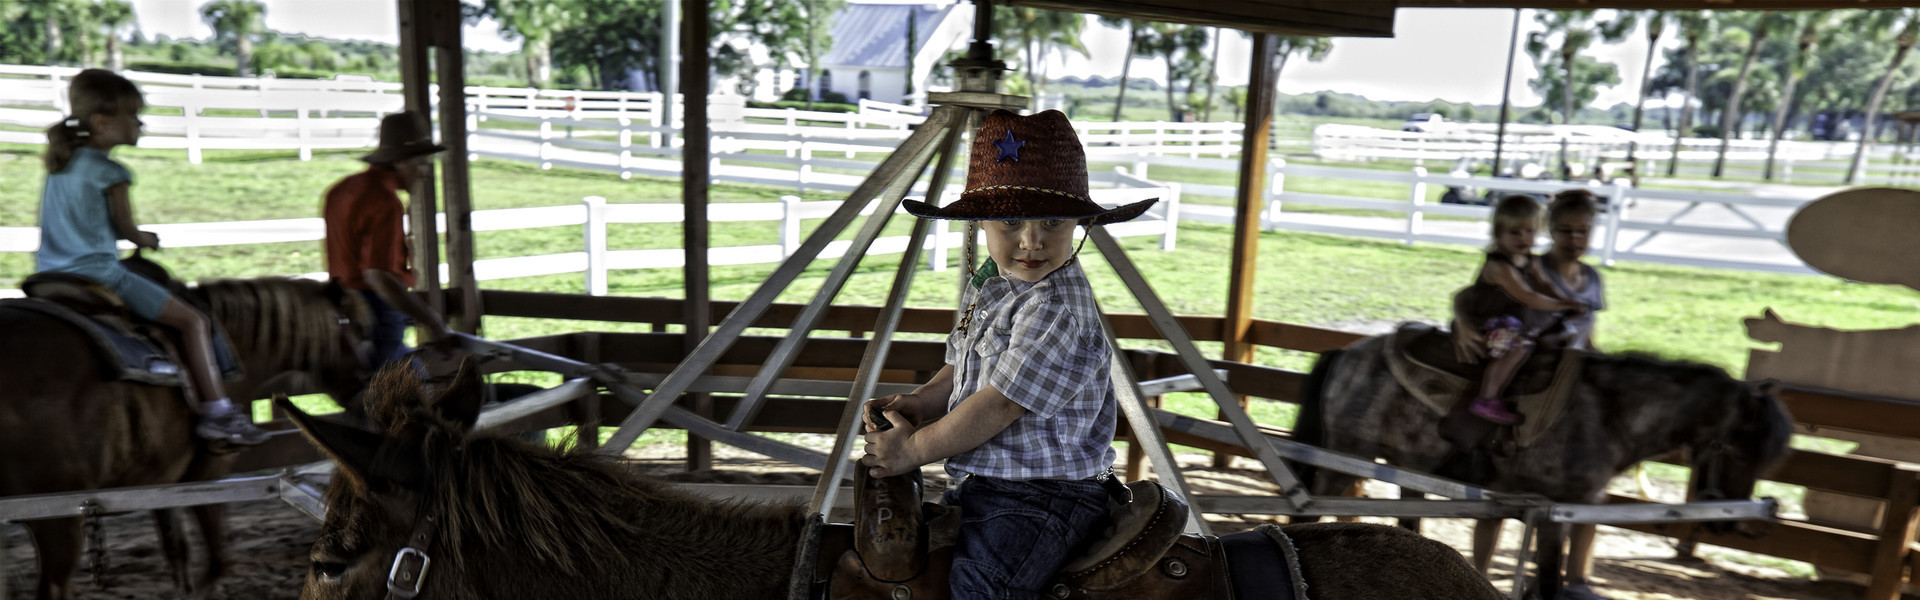 Kids ages 7 and younger can ride a gentle pony in live merry-go-round that moves our ponies and mules in small circles for an easy and smooth ride. Located inside the Petting Farm at Westgate River Ranch Resort & Rodeo in Florida.